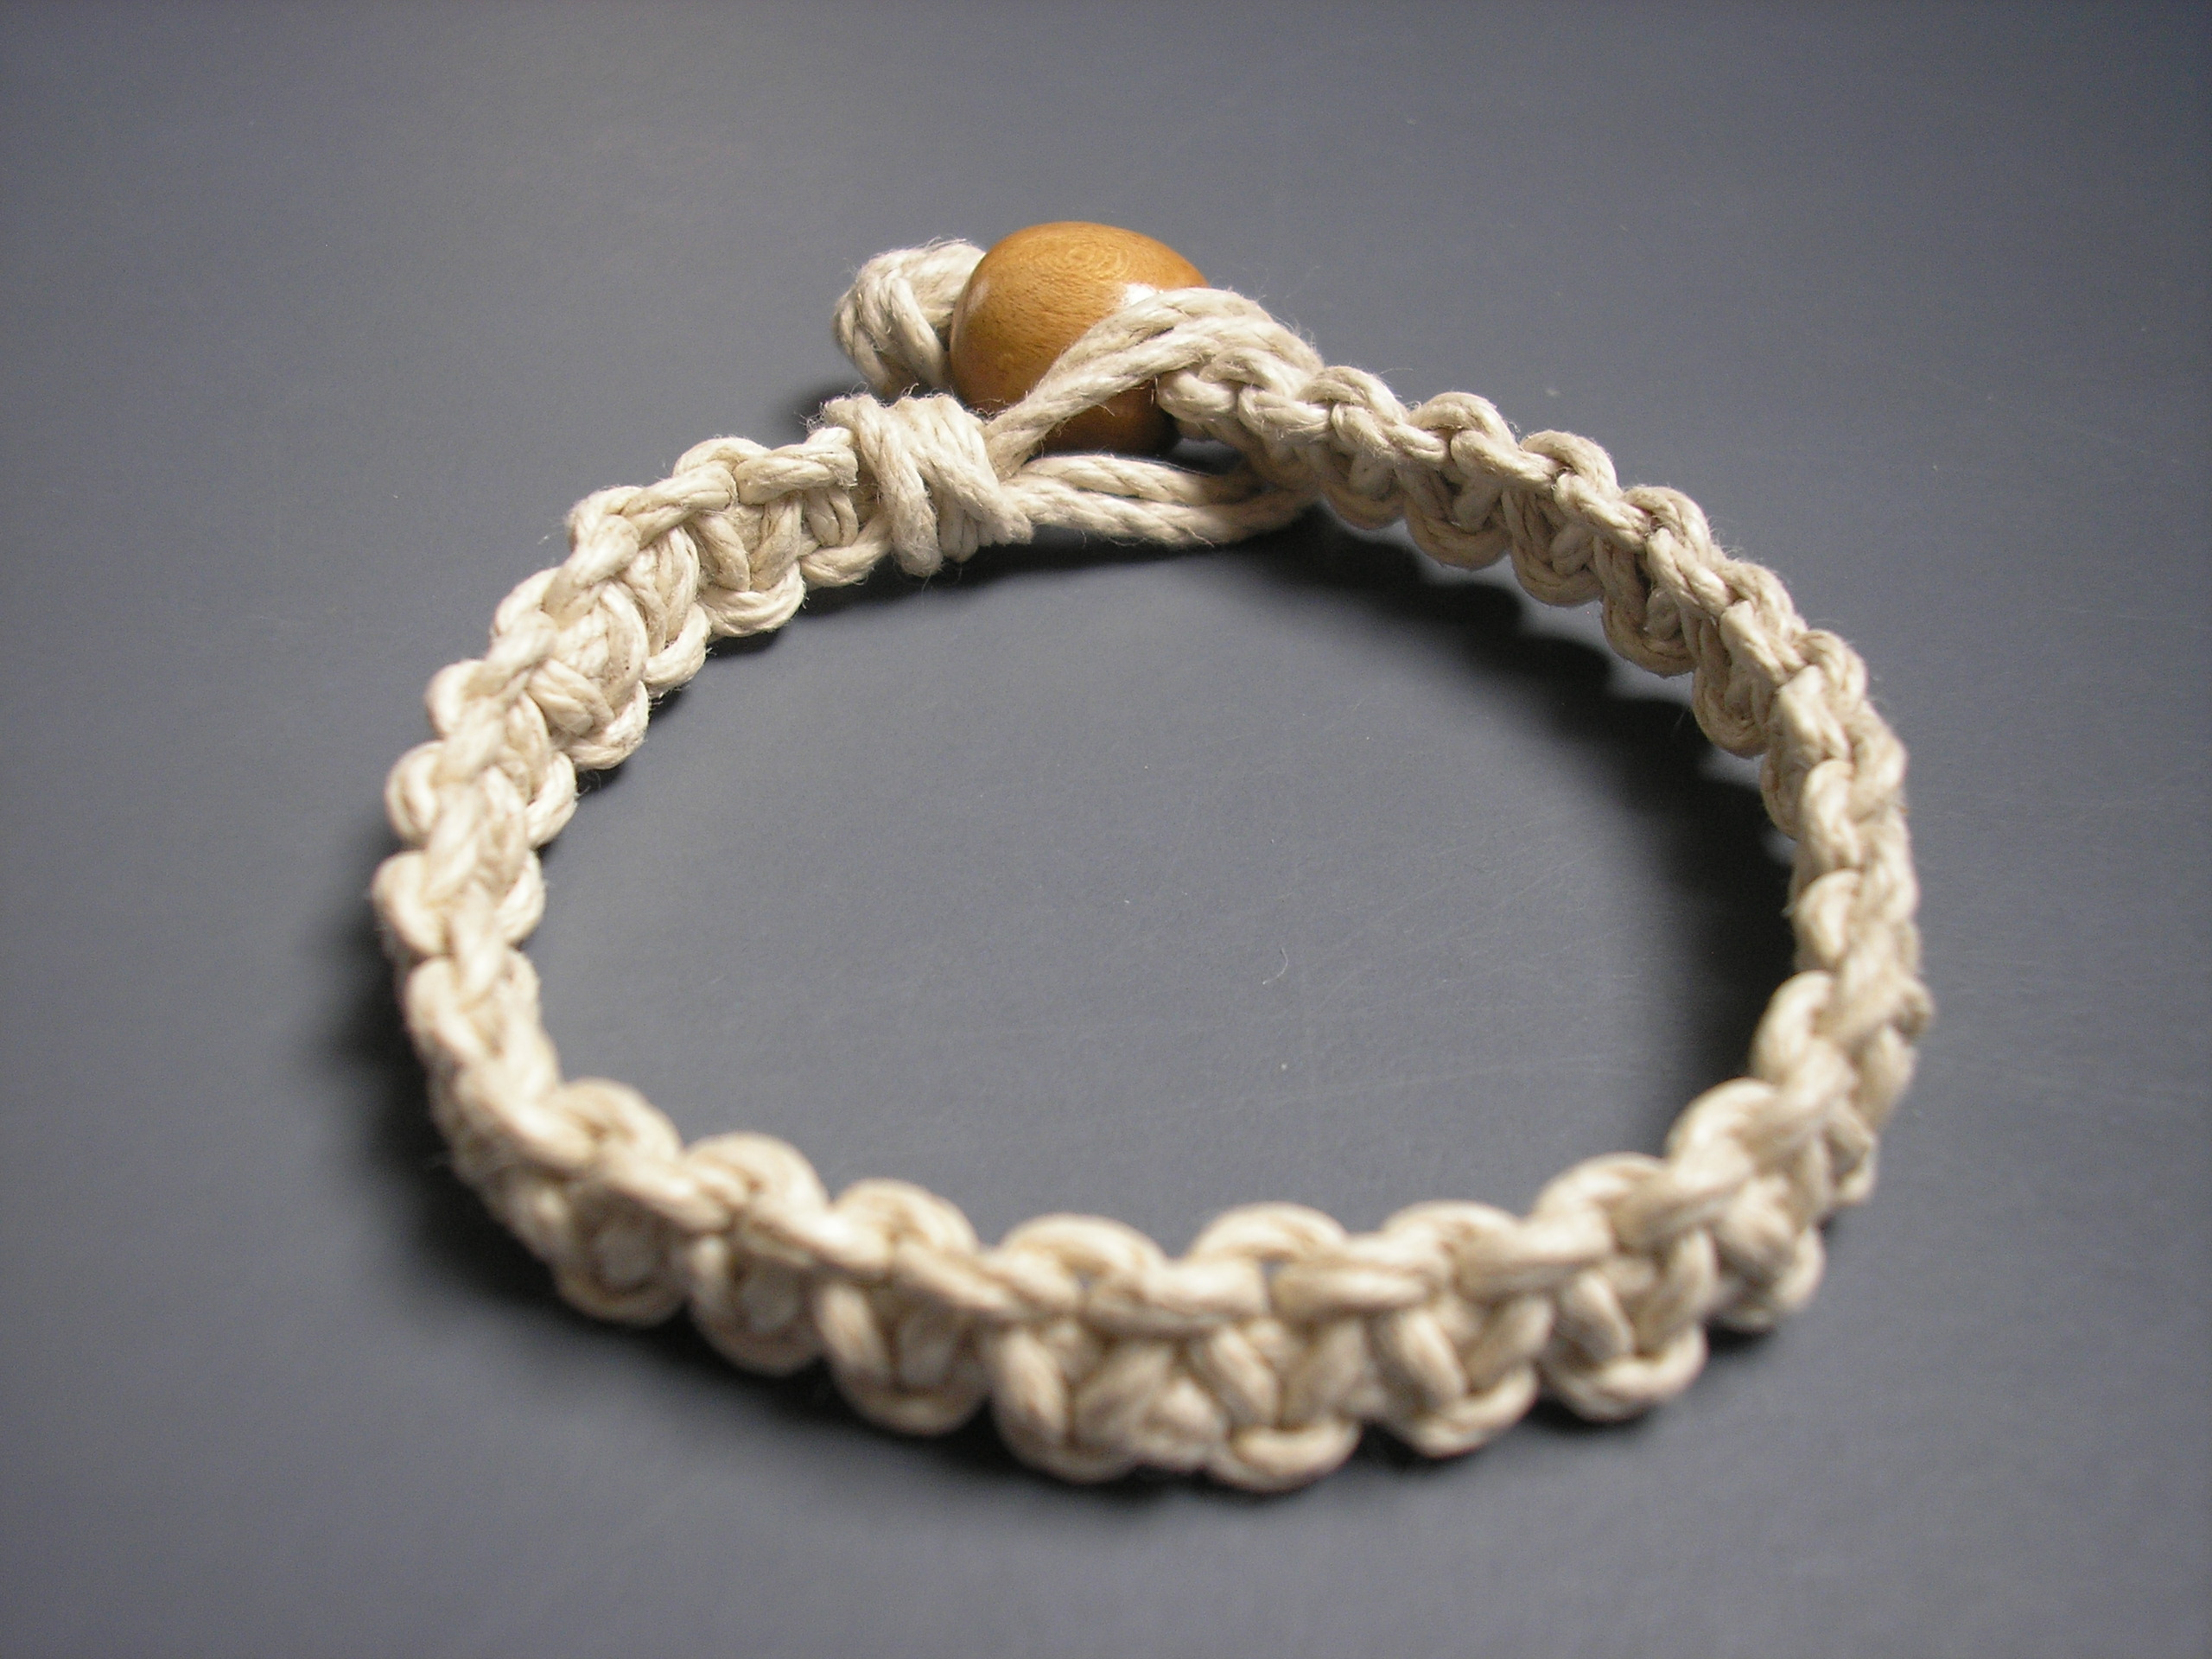 3 Natural Hemp Bracelets and or Anklets on Storenvy